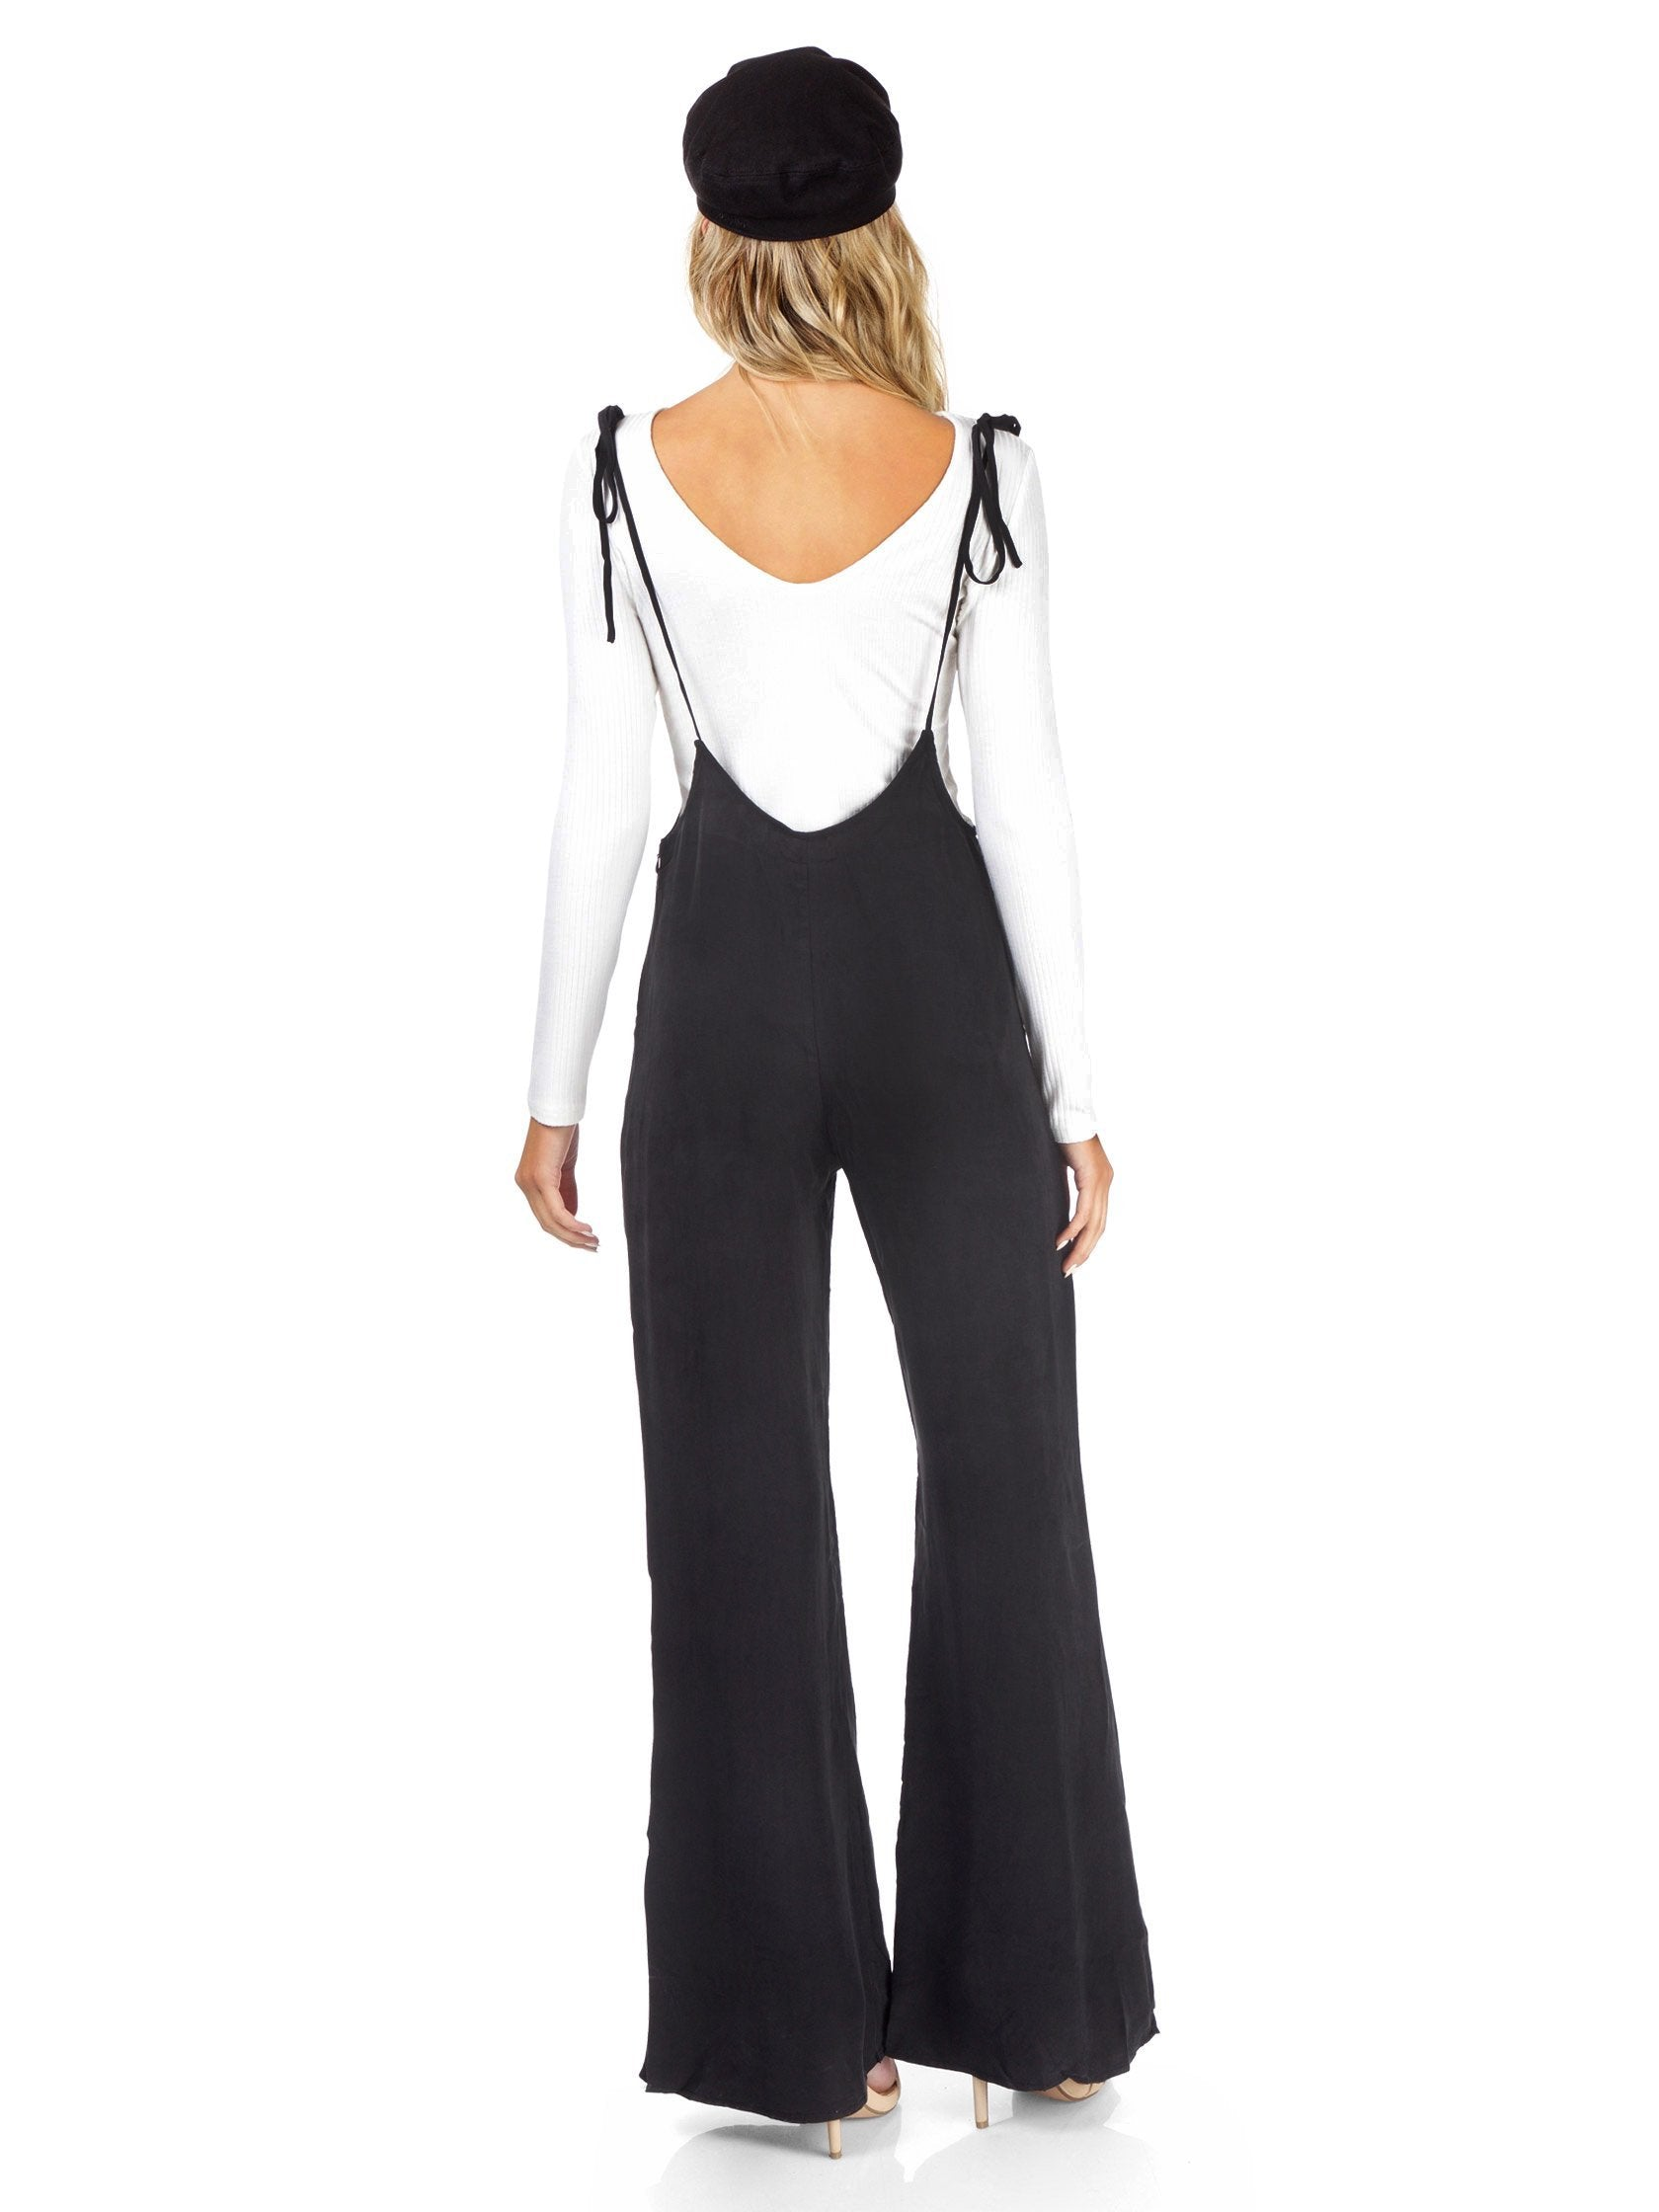 Women wearing a jumpsuit rental from FashionPass called Sasha Jumpsuit